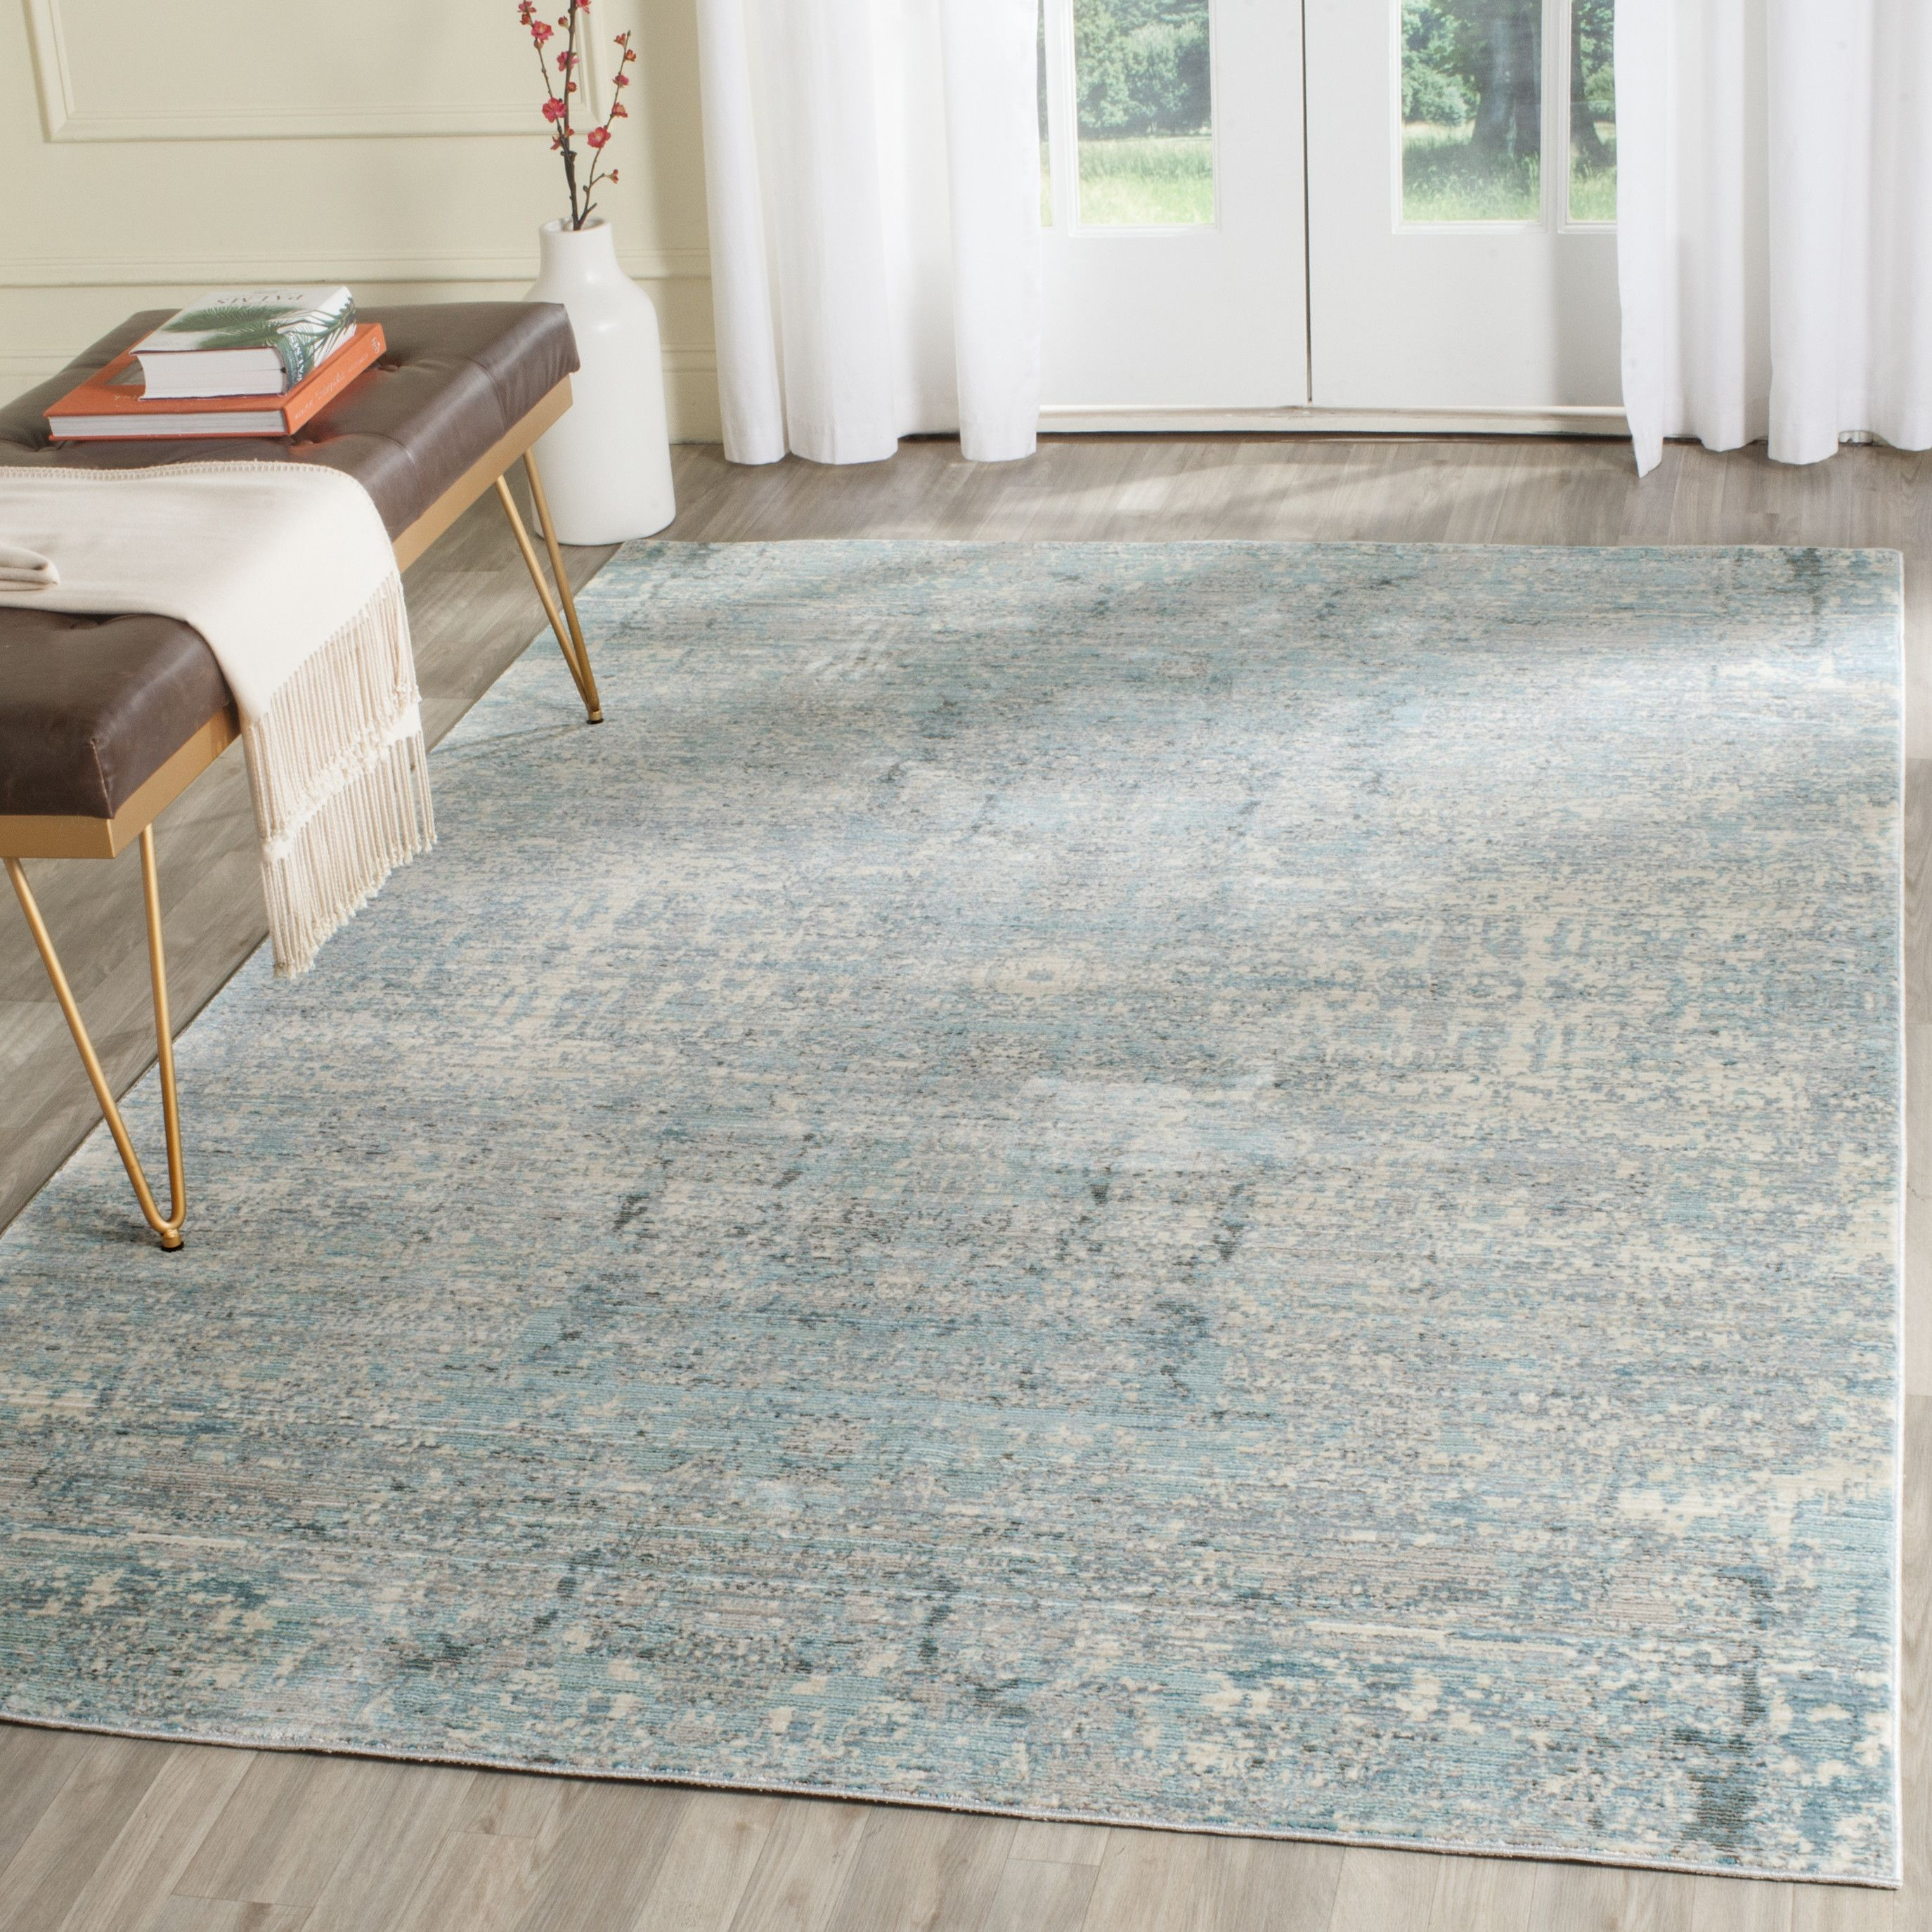 Safavieh Abella Teal Area Rug Reviews Wayfair Co Uk